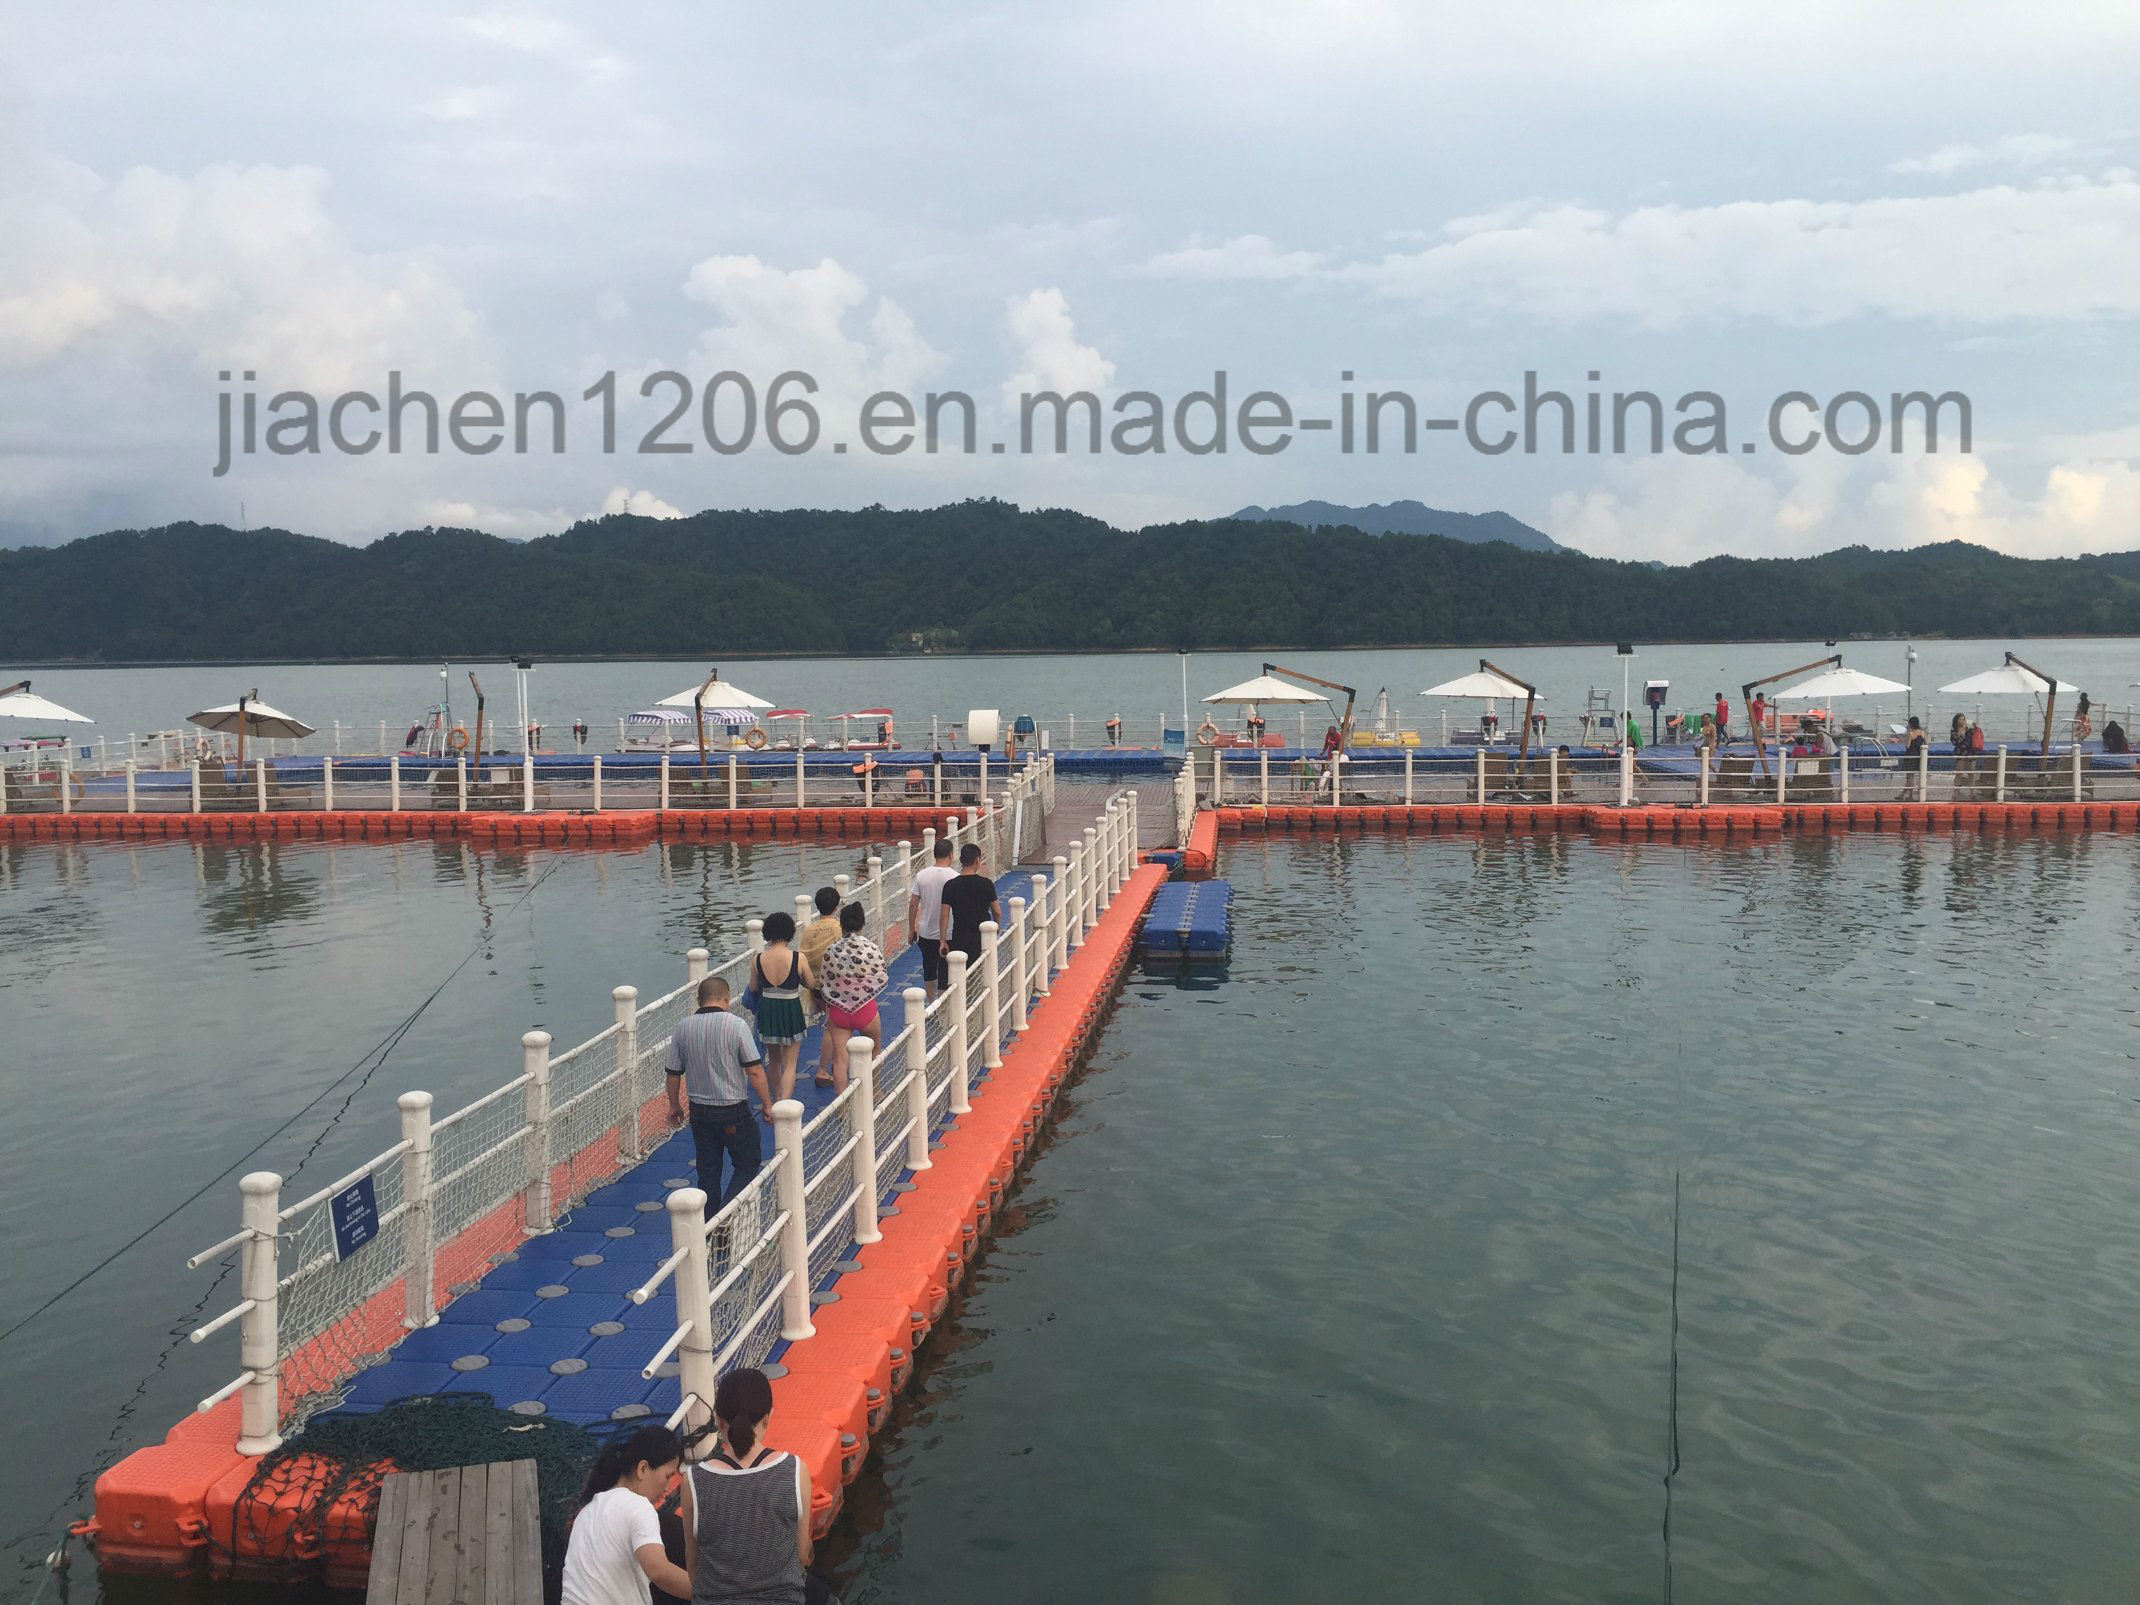 Jiachen Double Float Jet Ski Used Boat Docks for Sale